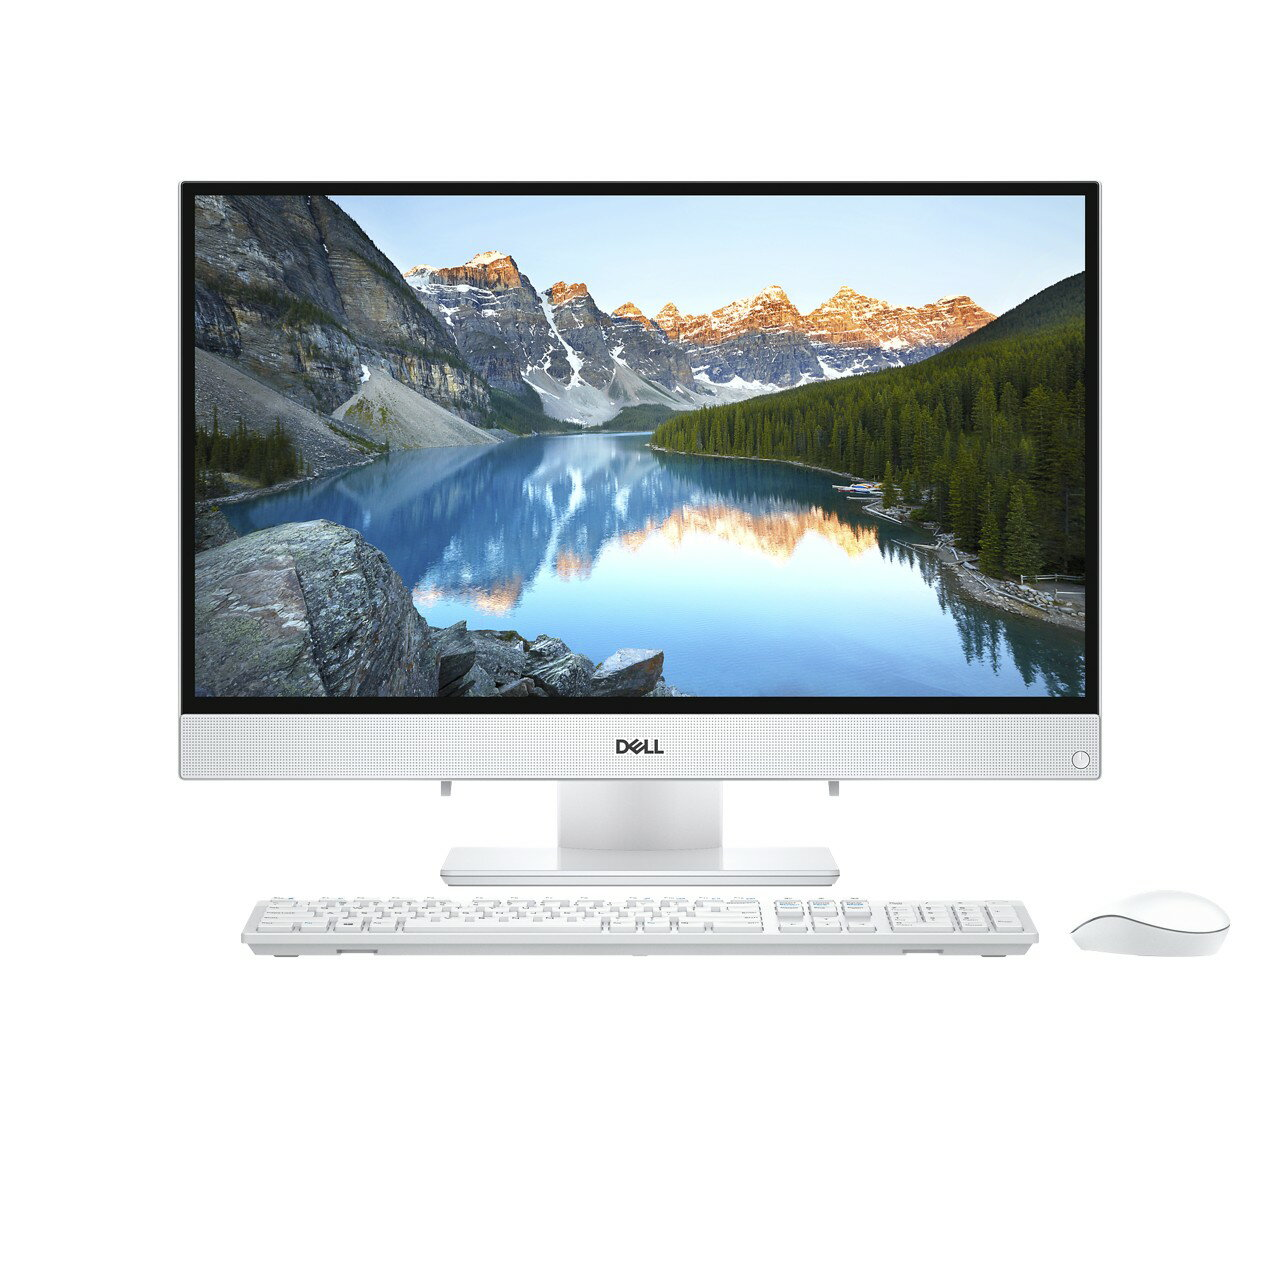 "Dell Inspiron 24 3477 23.8"" FHD Touchscreen All-in-One + 25% Rakuten Credit"